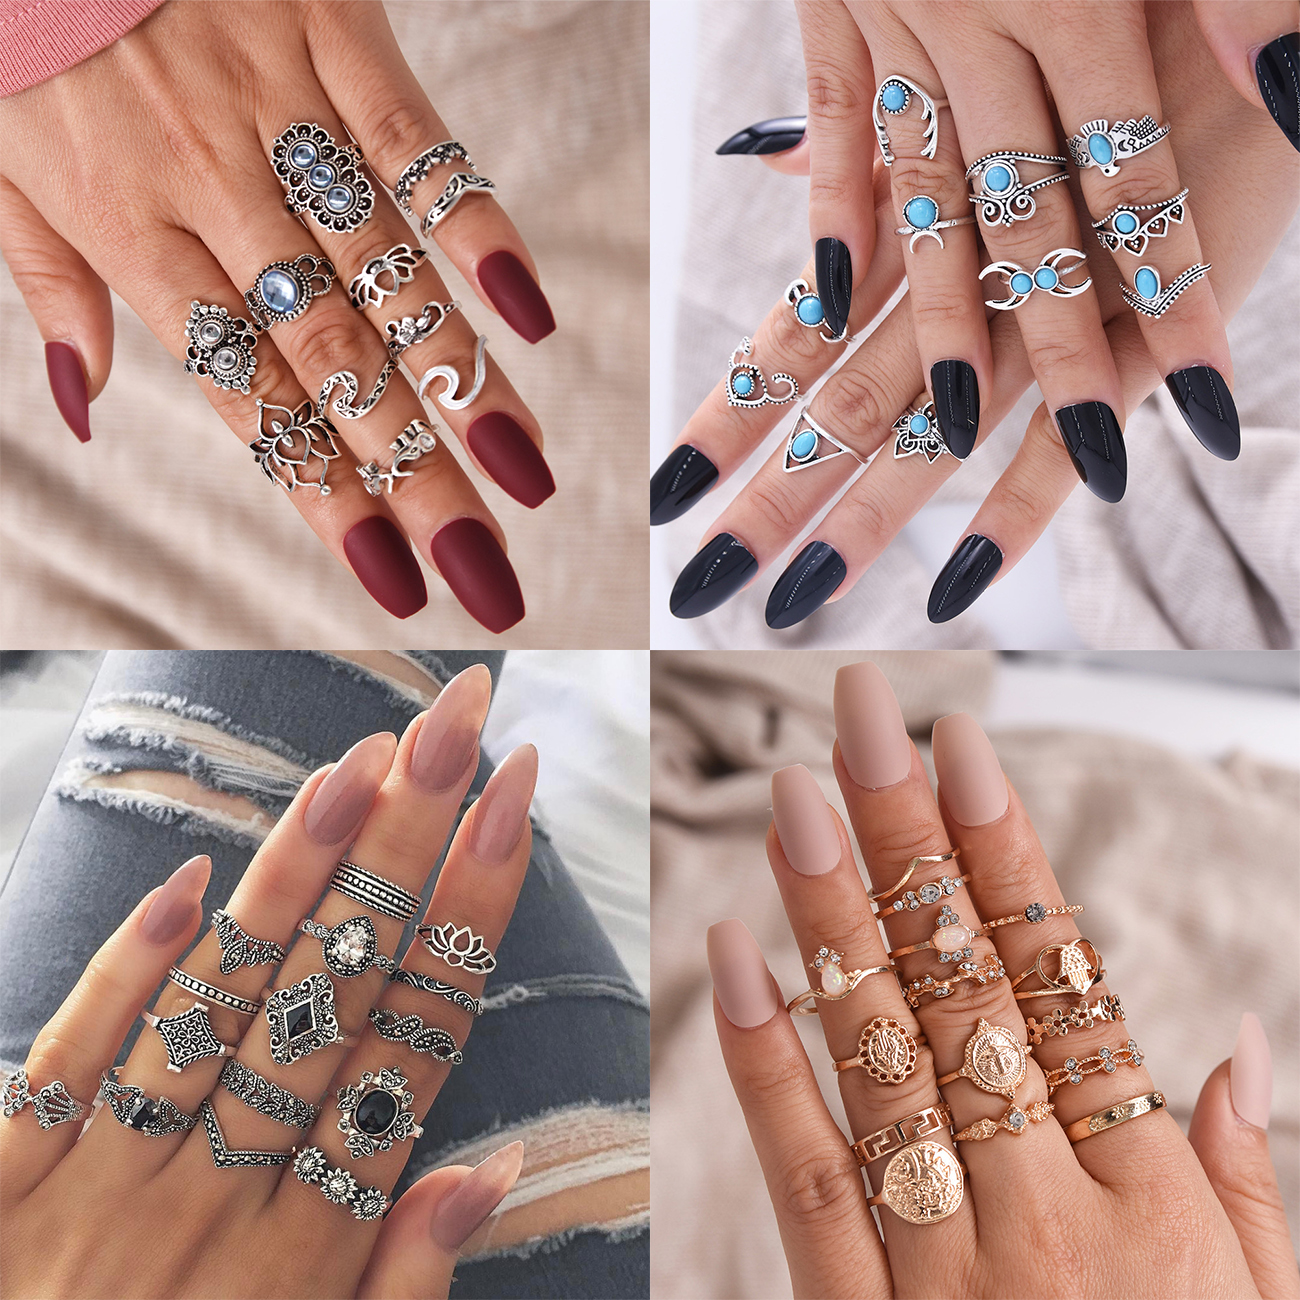 15 Pcs/set New Vintage Gold Coin Beauty Head Pattern Cross Love Heart Ring Set Women Wedding Anniversary Gift 5